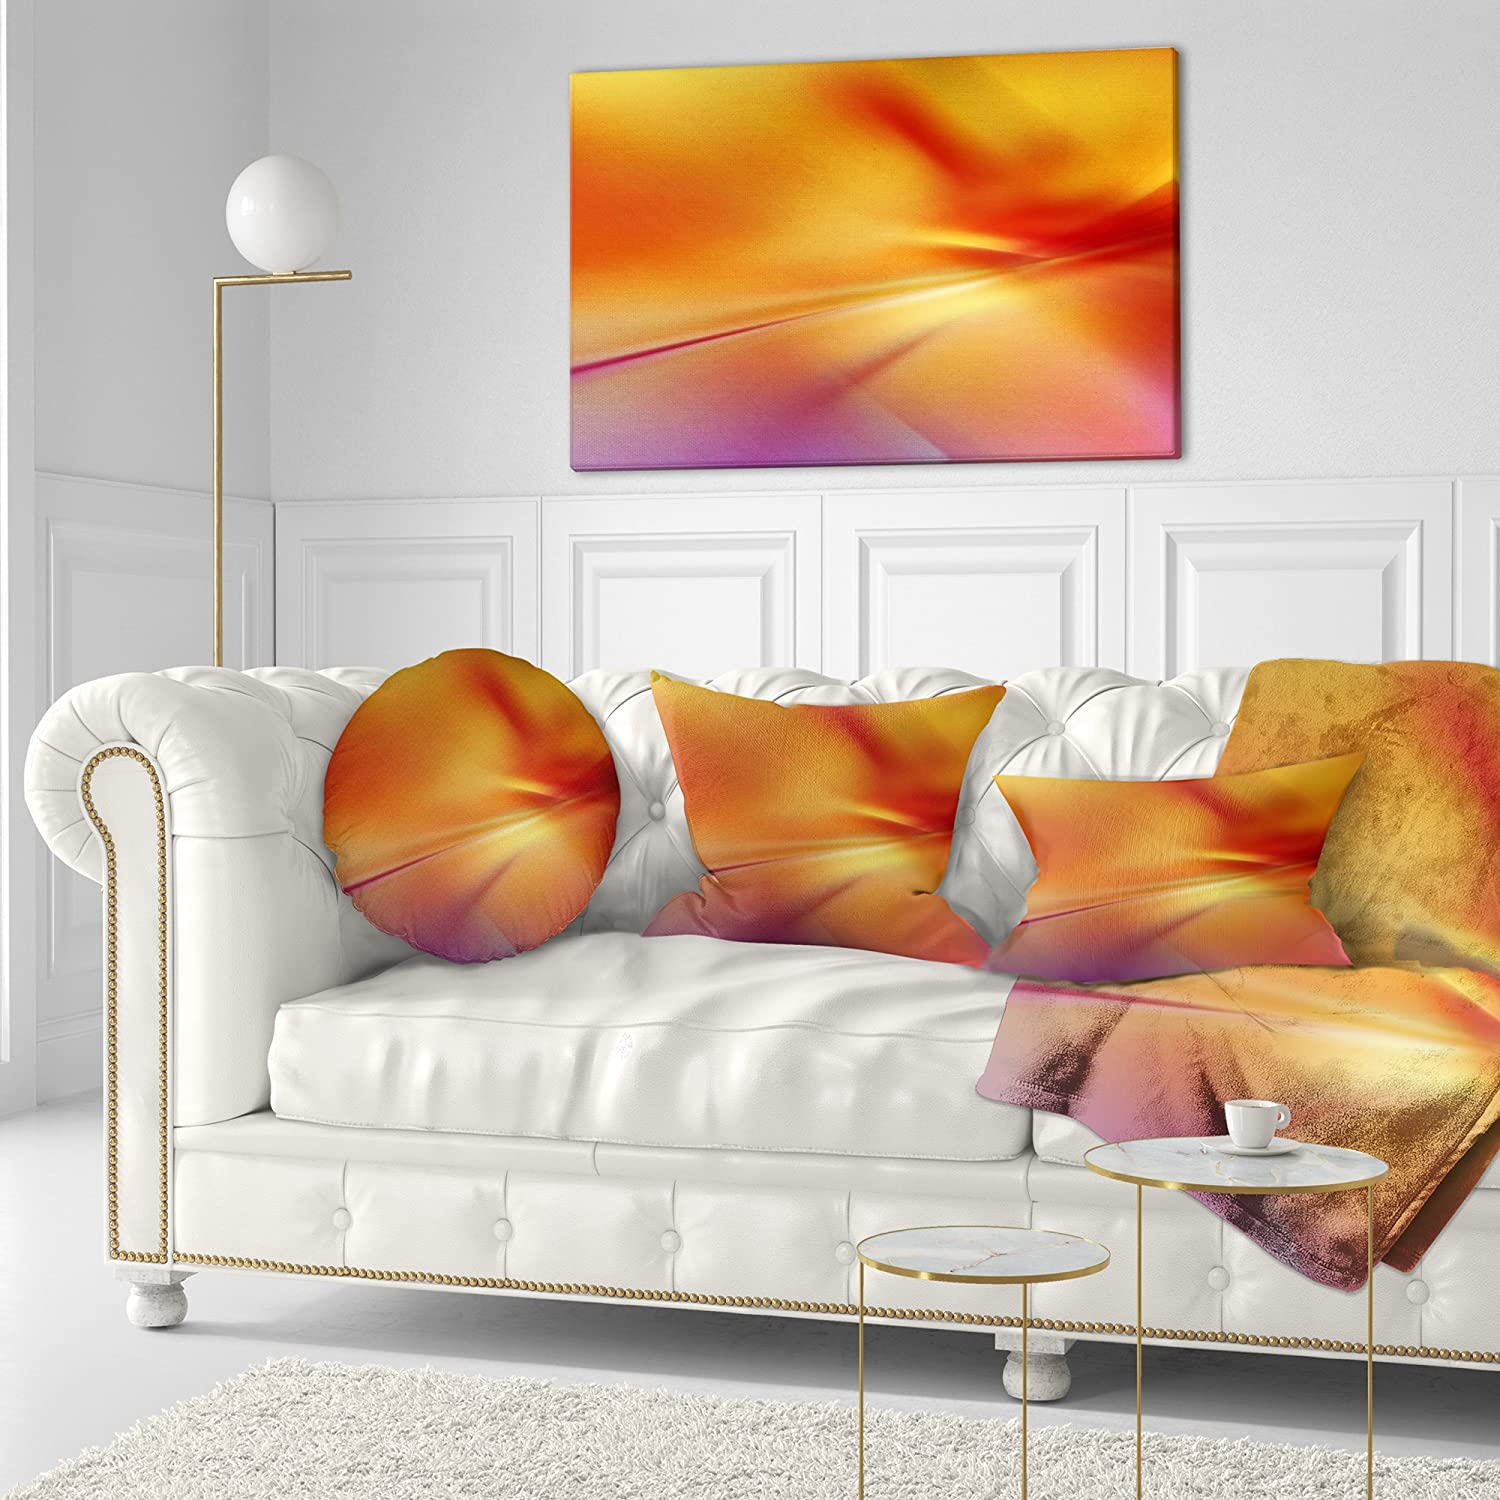 Insert Printed On Both Side x 20 in in Sofa Throw Pillow 12 in Designart CU8154-12-20 Orange Red Art Abstract Lumbar Cushion Cover for Living Room